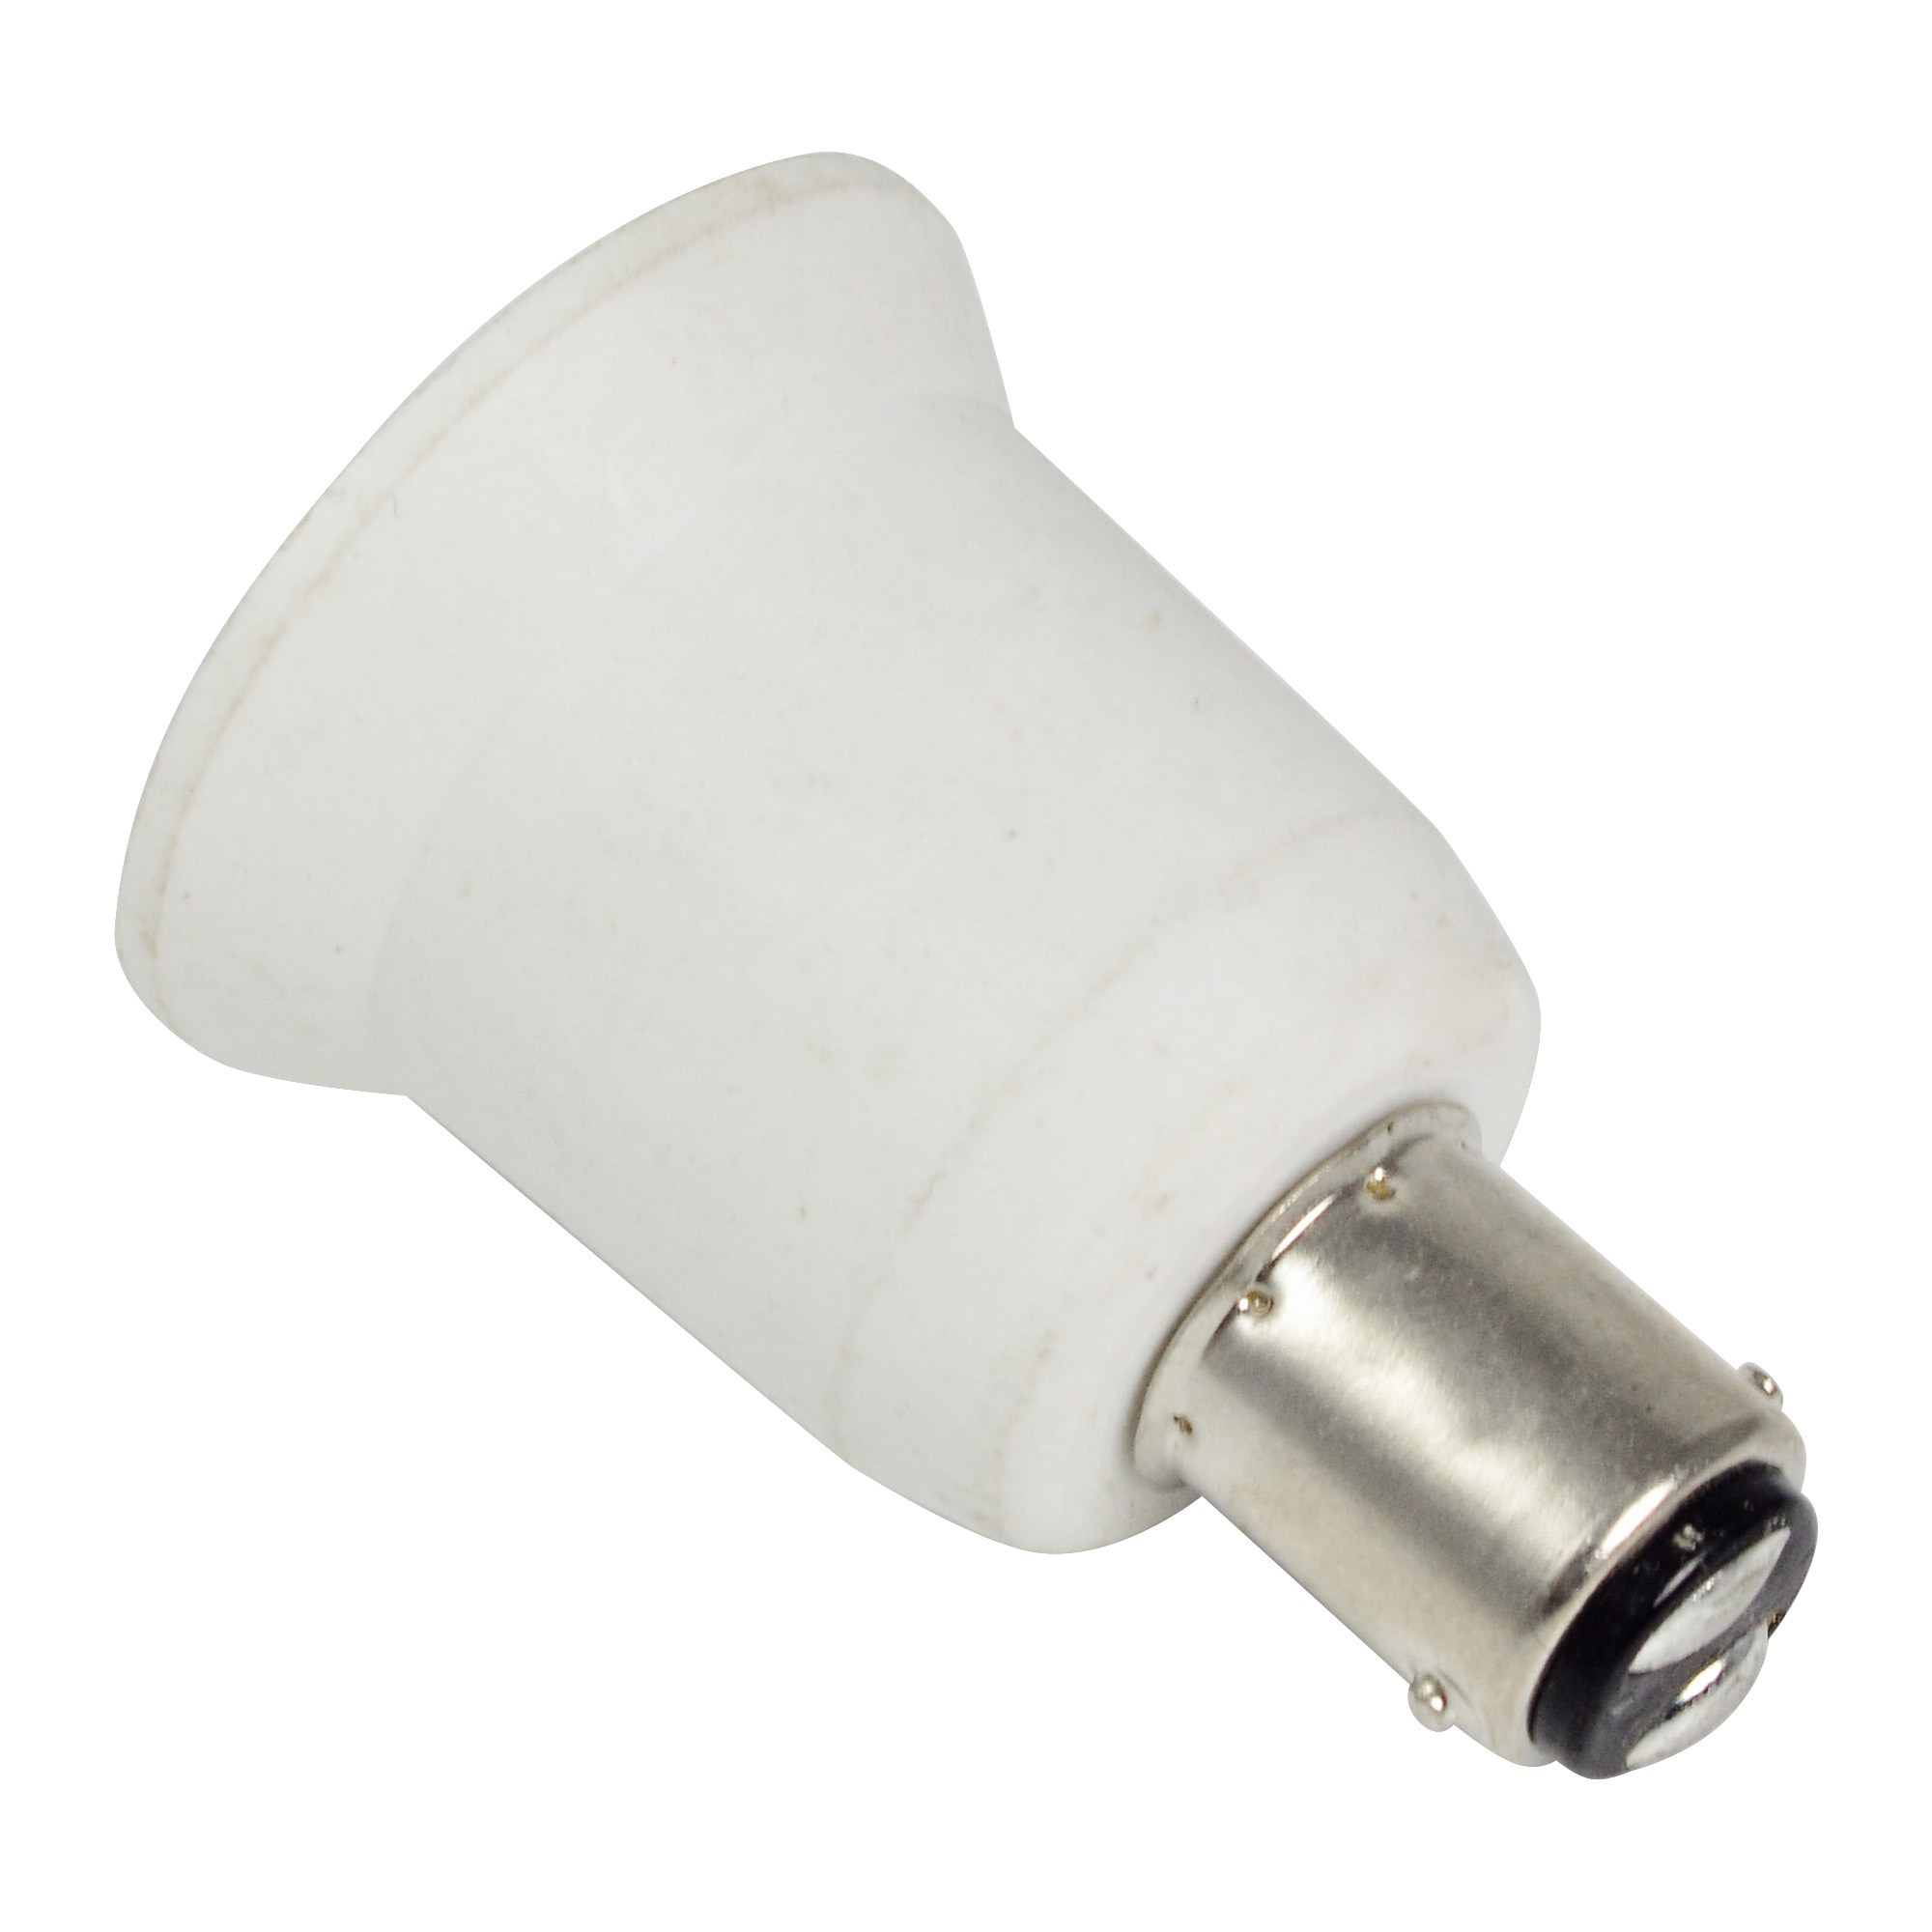 Mengsled Mengs 174 High Quality Lamp Base Adapter Ba15d To E26 Led Light Bulb Socket Converter